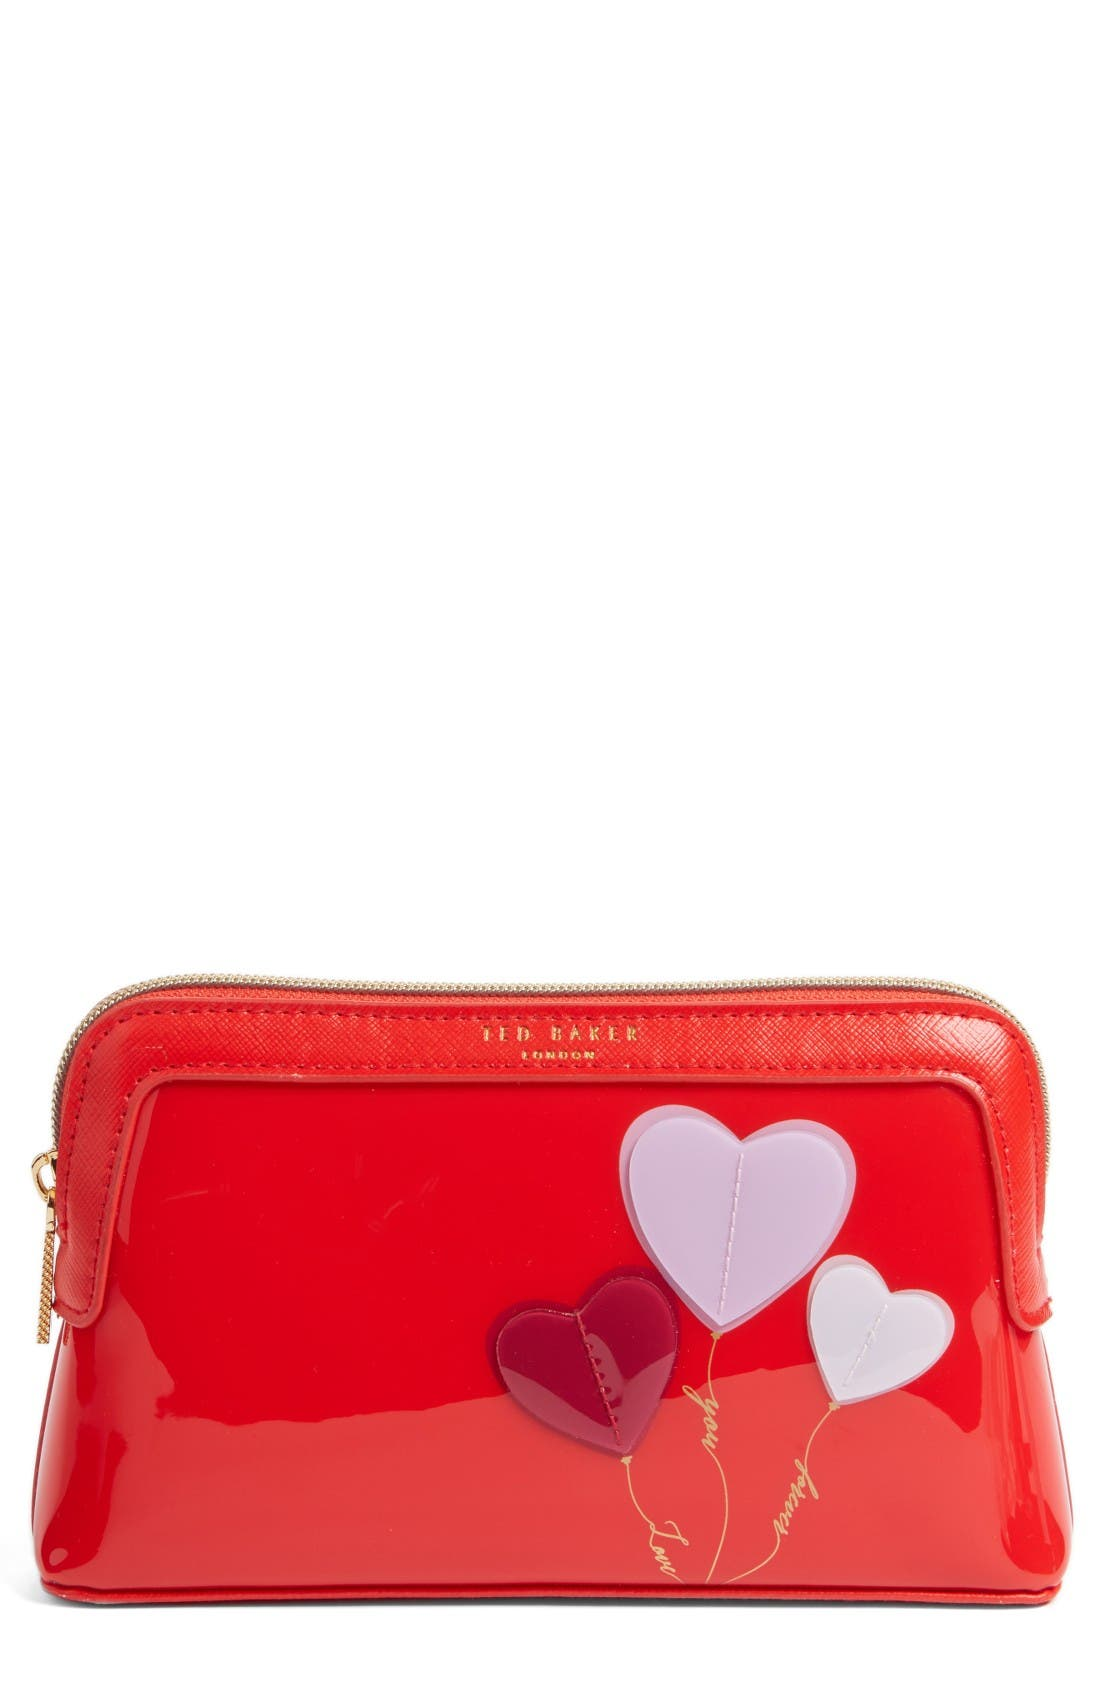 Main Image - Ted Baker London Heart Cosmetics Bag